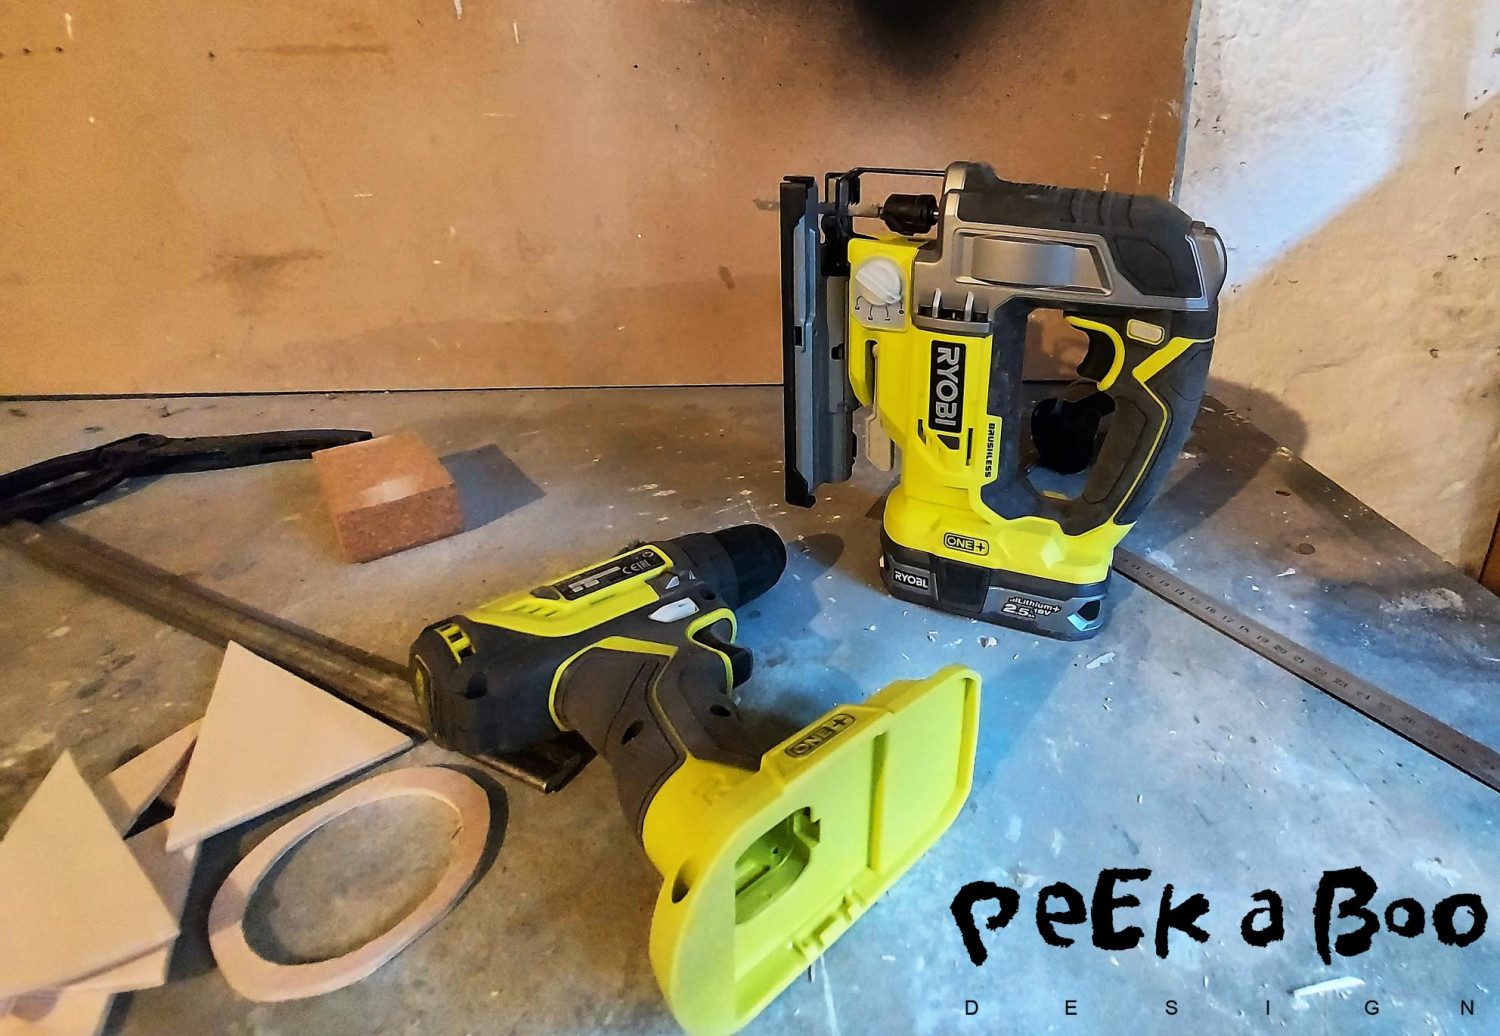 Here I have both the drilling machine and the saw and both use the same battery, so I can easily change from one machine to another.